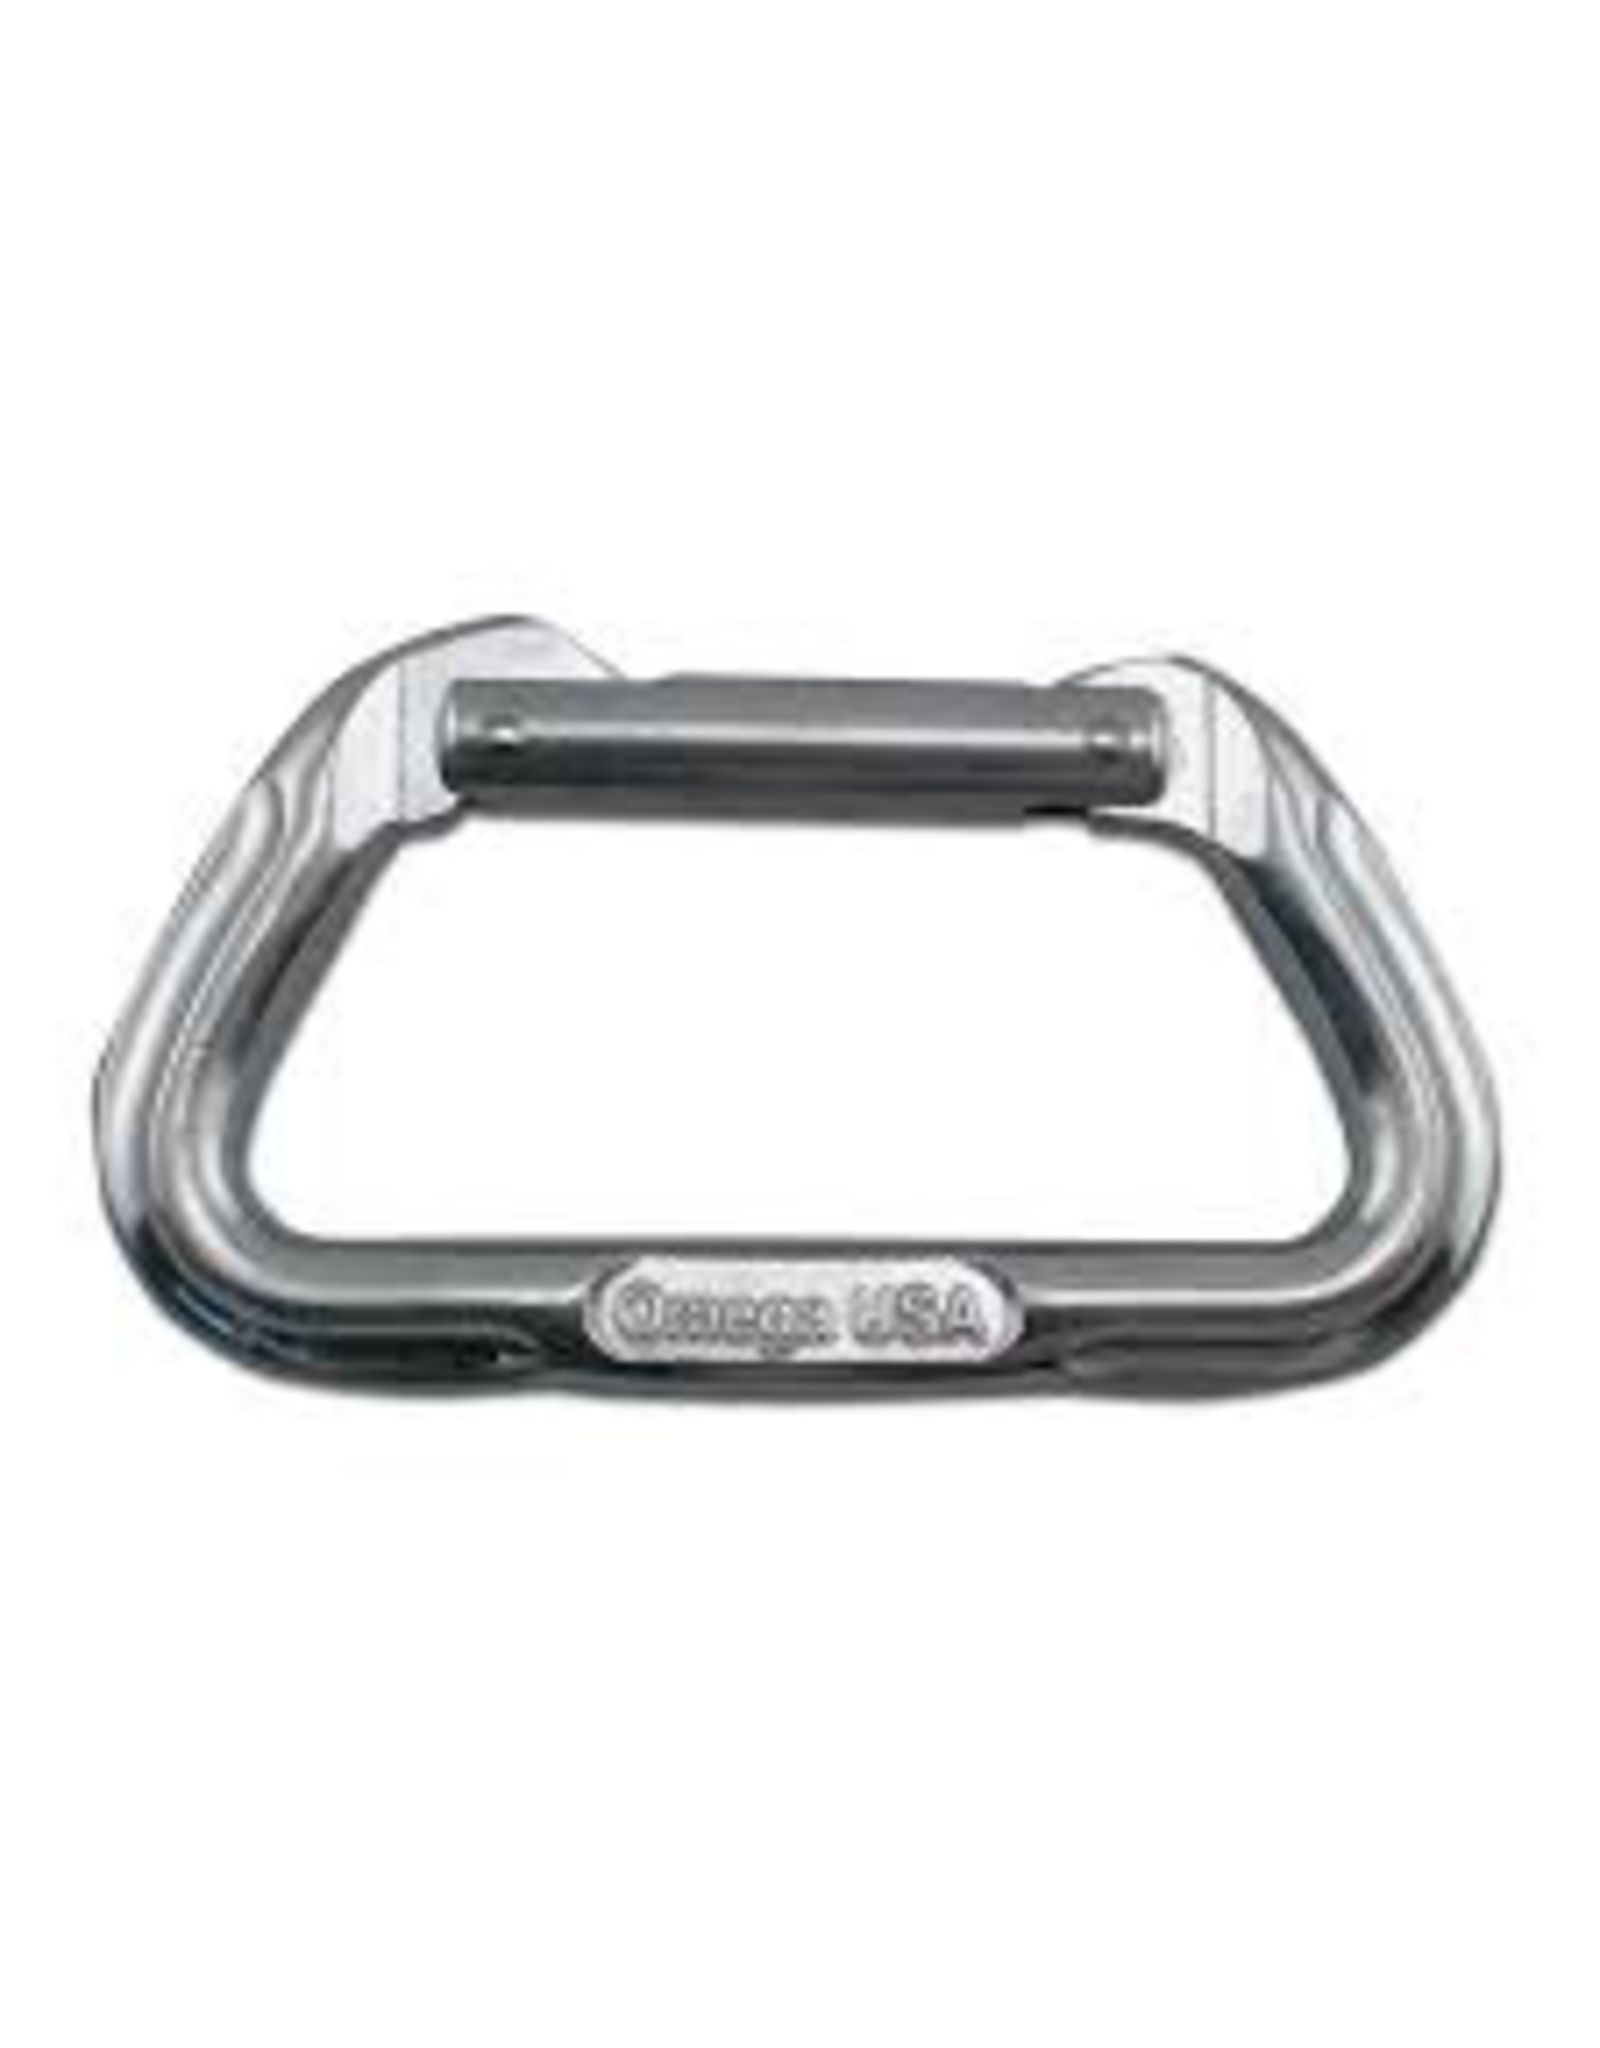 Omega Pacific Carabiner Standard D Bright Force